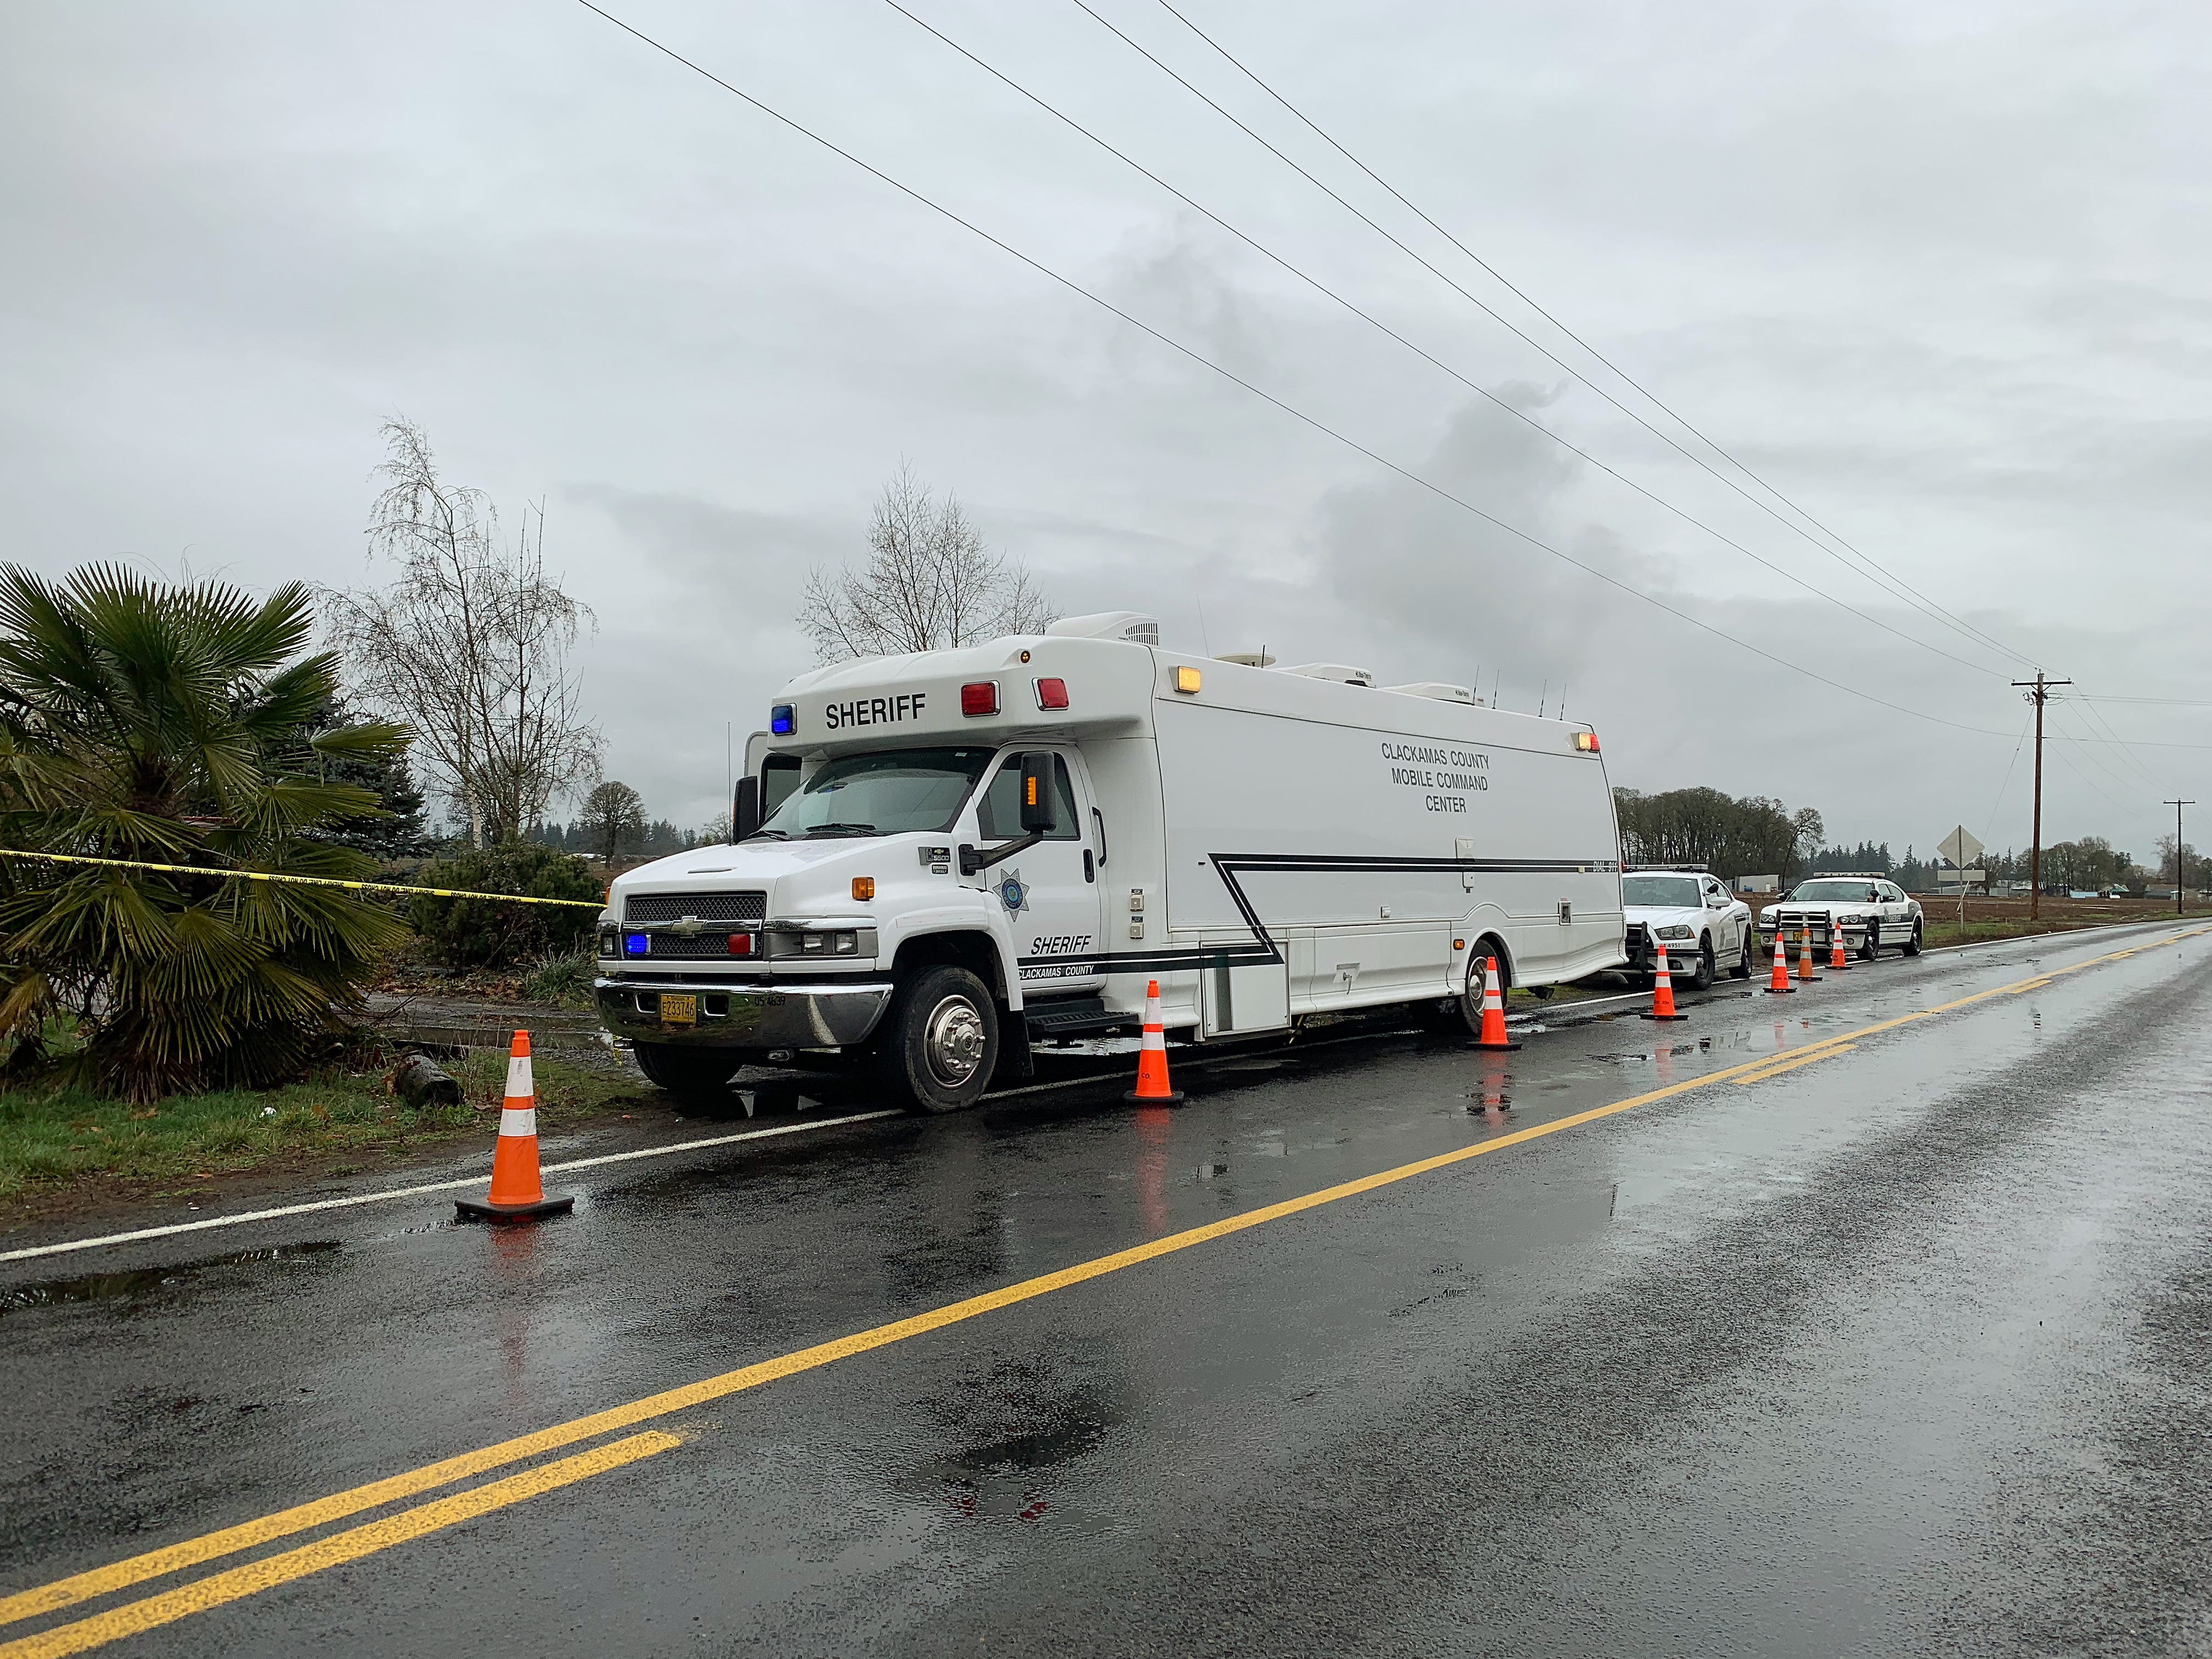 The Clackamas County Sheriff mobile command unit sits outside of a property as they investigate a quadruple murder where the suspect was shot and killed by deputies on Saturday night. Photographed on the 32000 block of Barlow Rd. S near Canby on Sunday, Jan. 20, 2019.